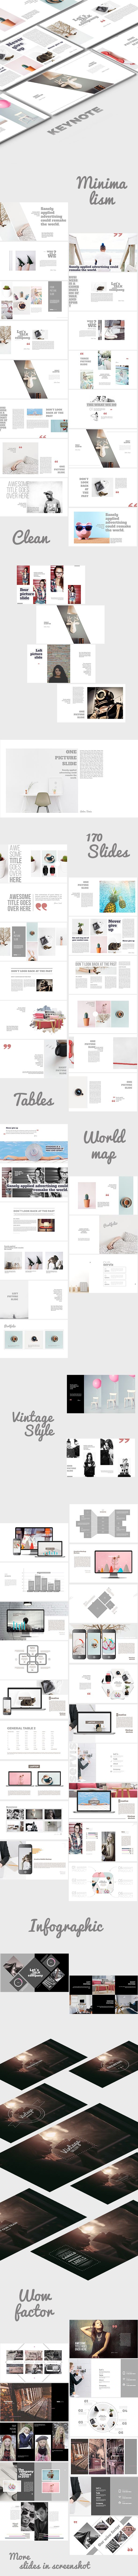 769 best design images on pinterest keynote template layout vintage keynote presentation toneelgroepblik Gallery